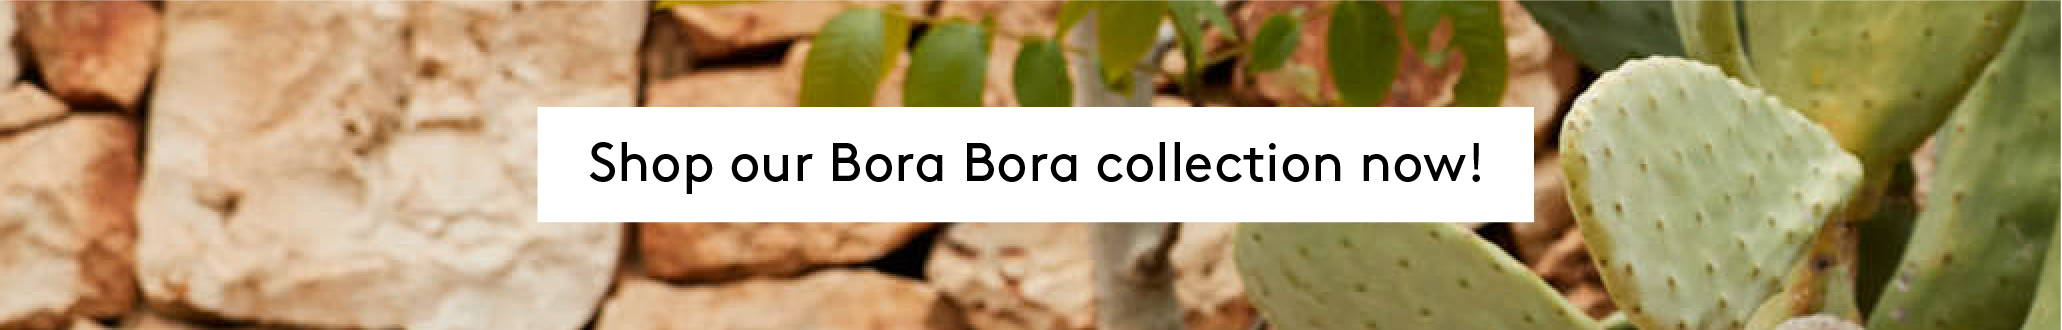 Shop our BORA BORA collection now!